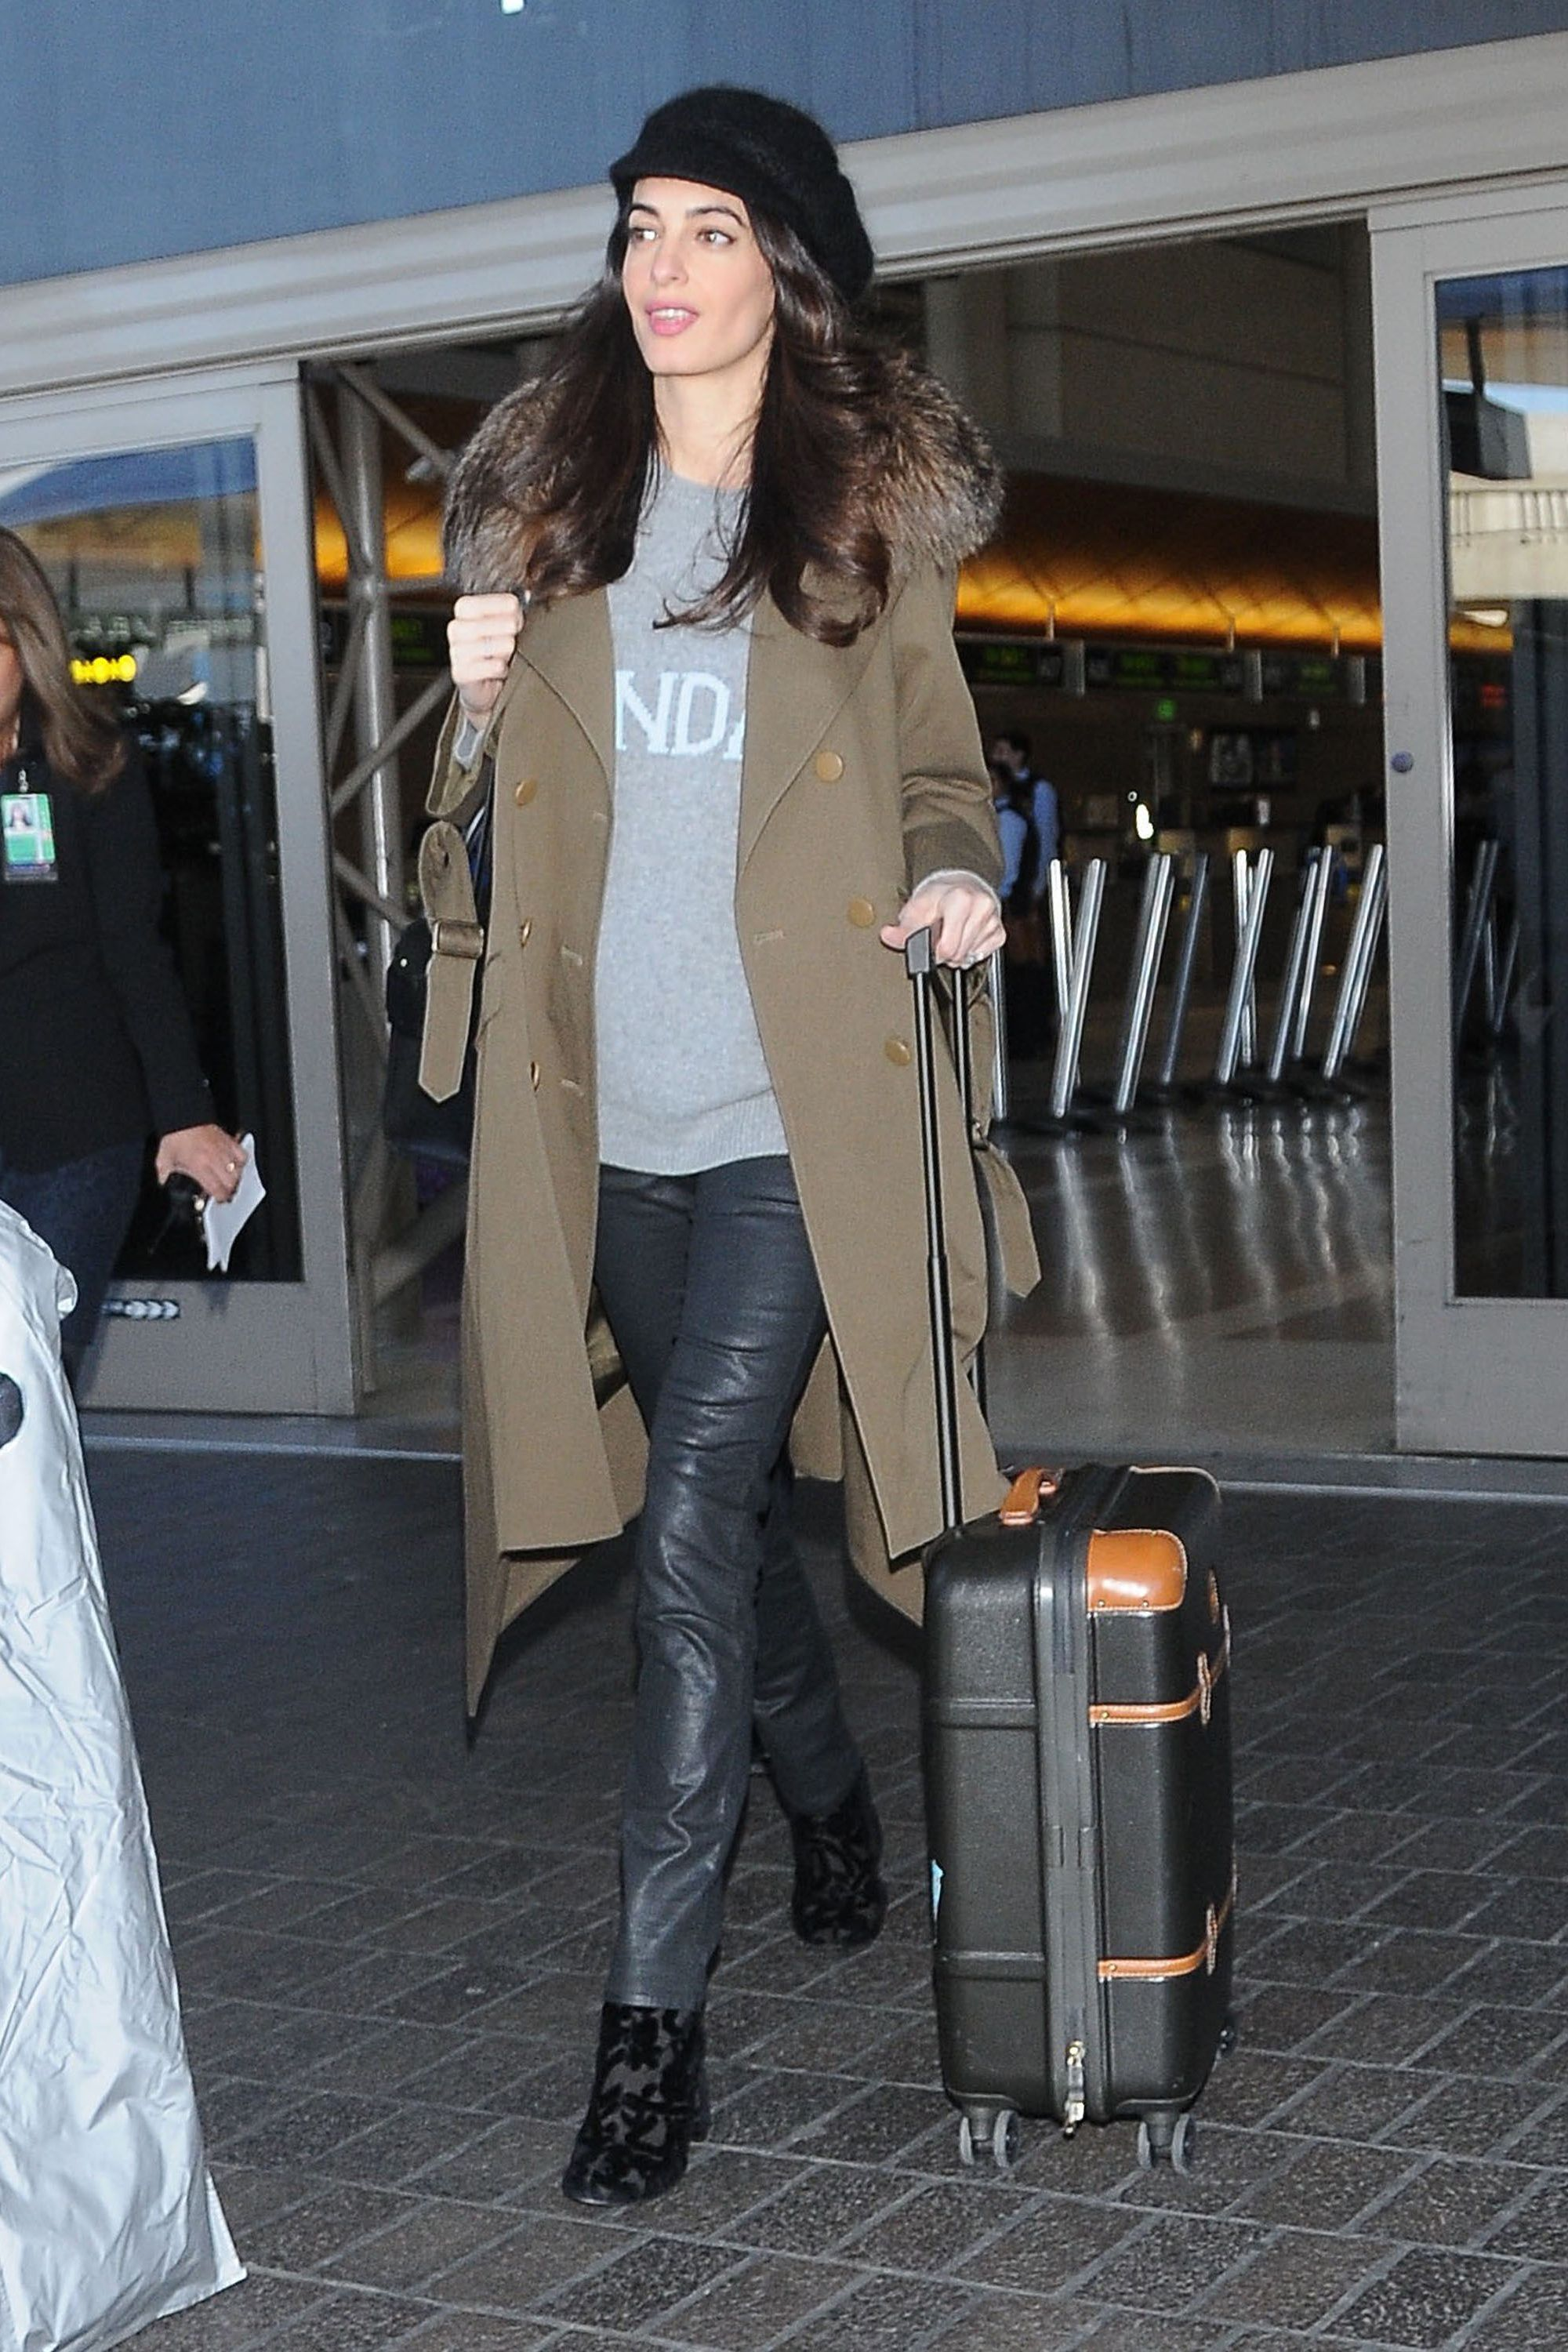 January 27, 2017 Arriving at the airport in an Adam Lippes coat and a slouchy Alberta Ferretti sweater.